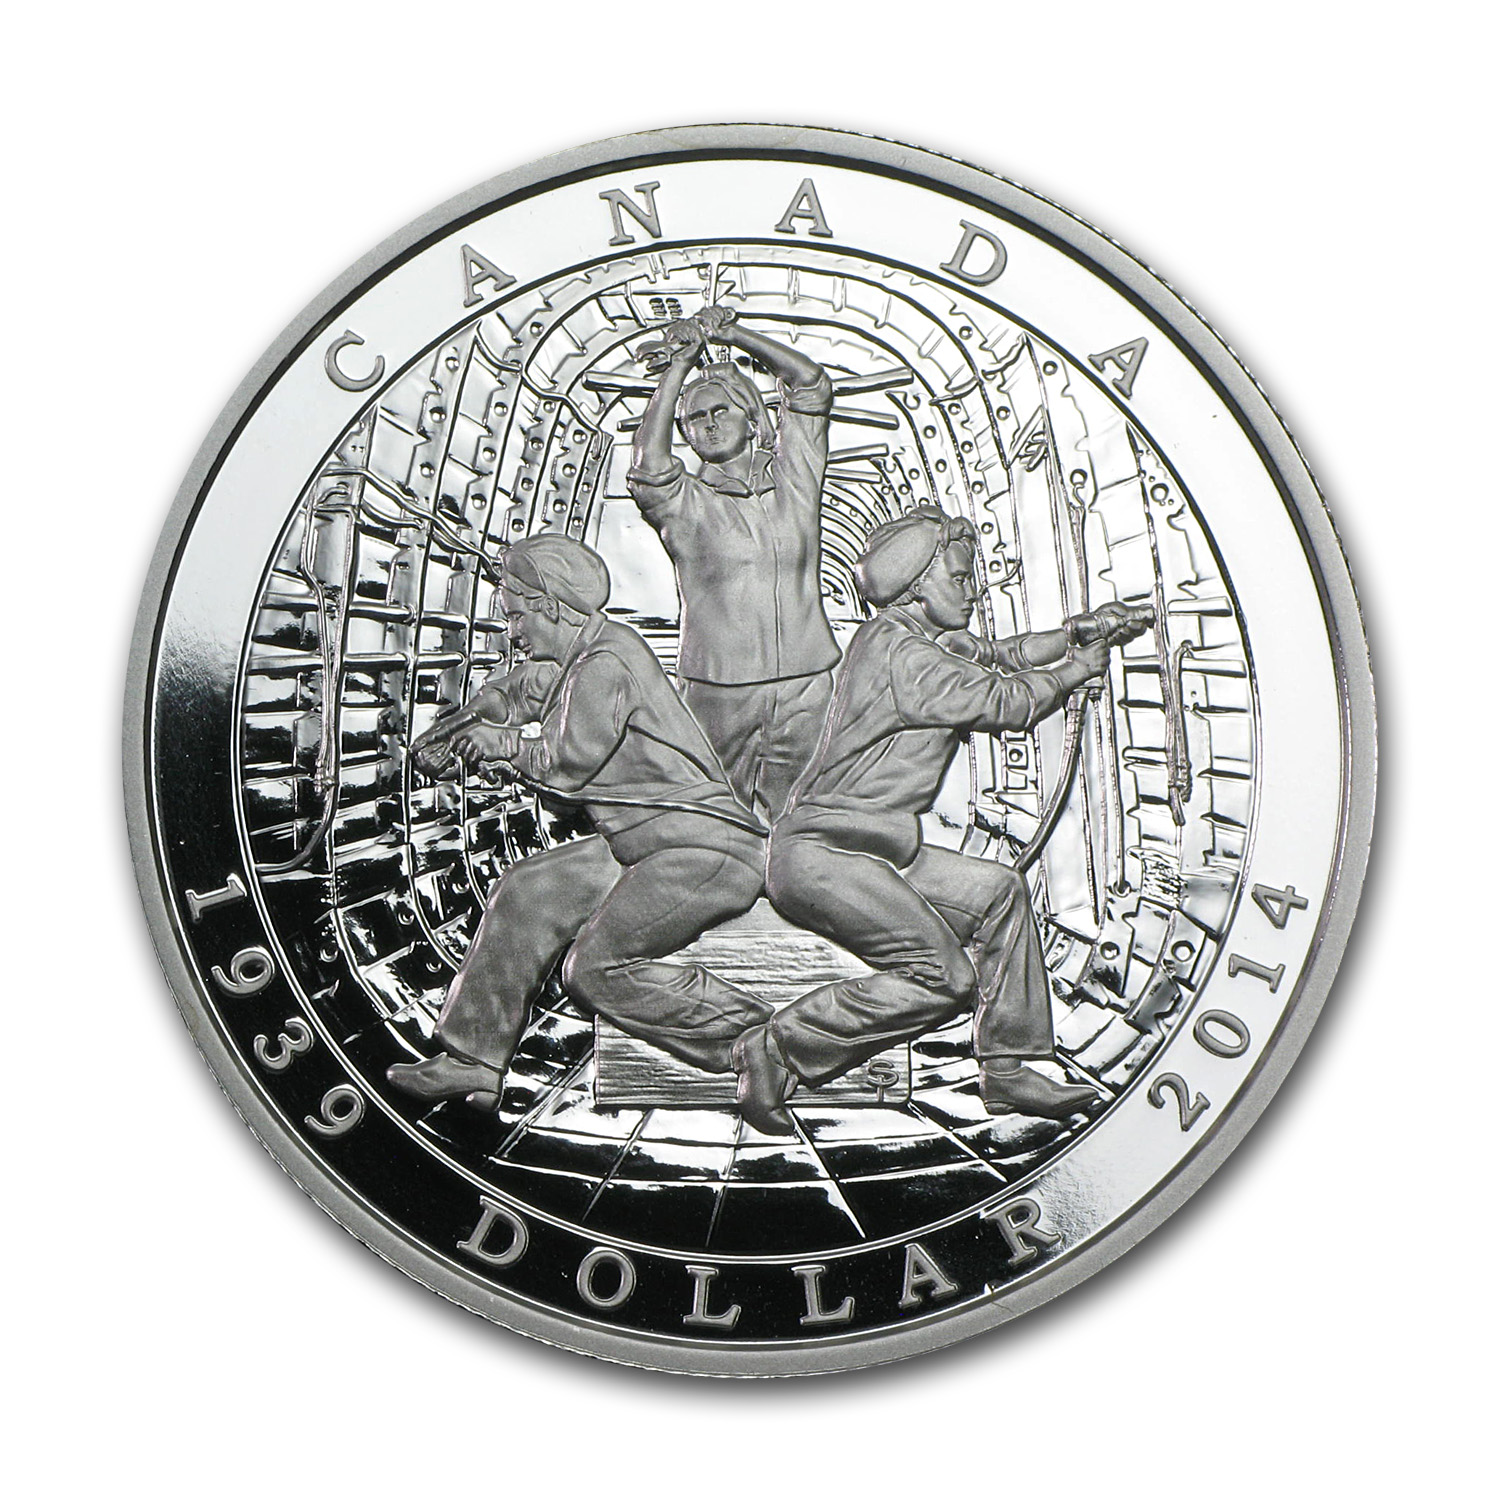 2014 Canada Silver 75th Anniv. of the Declaration of WWII Proof